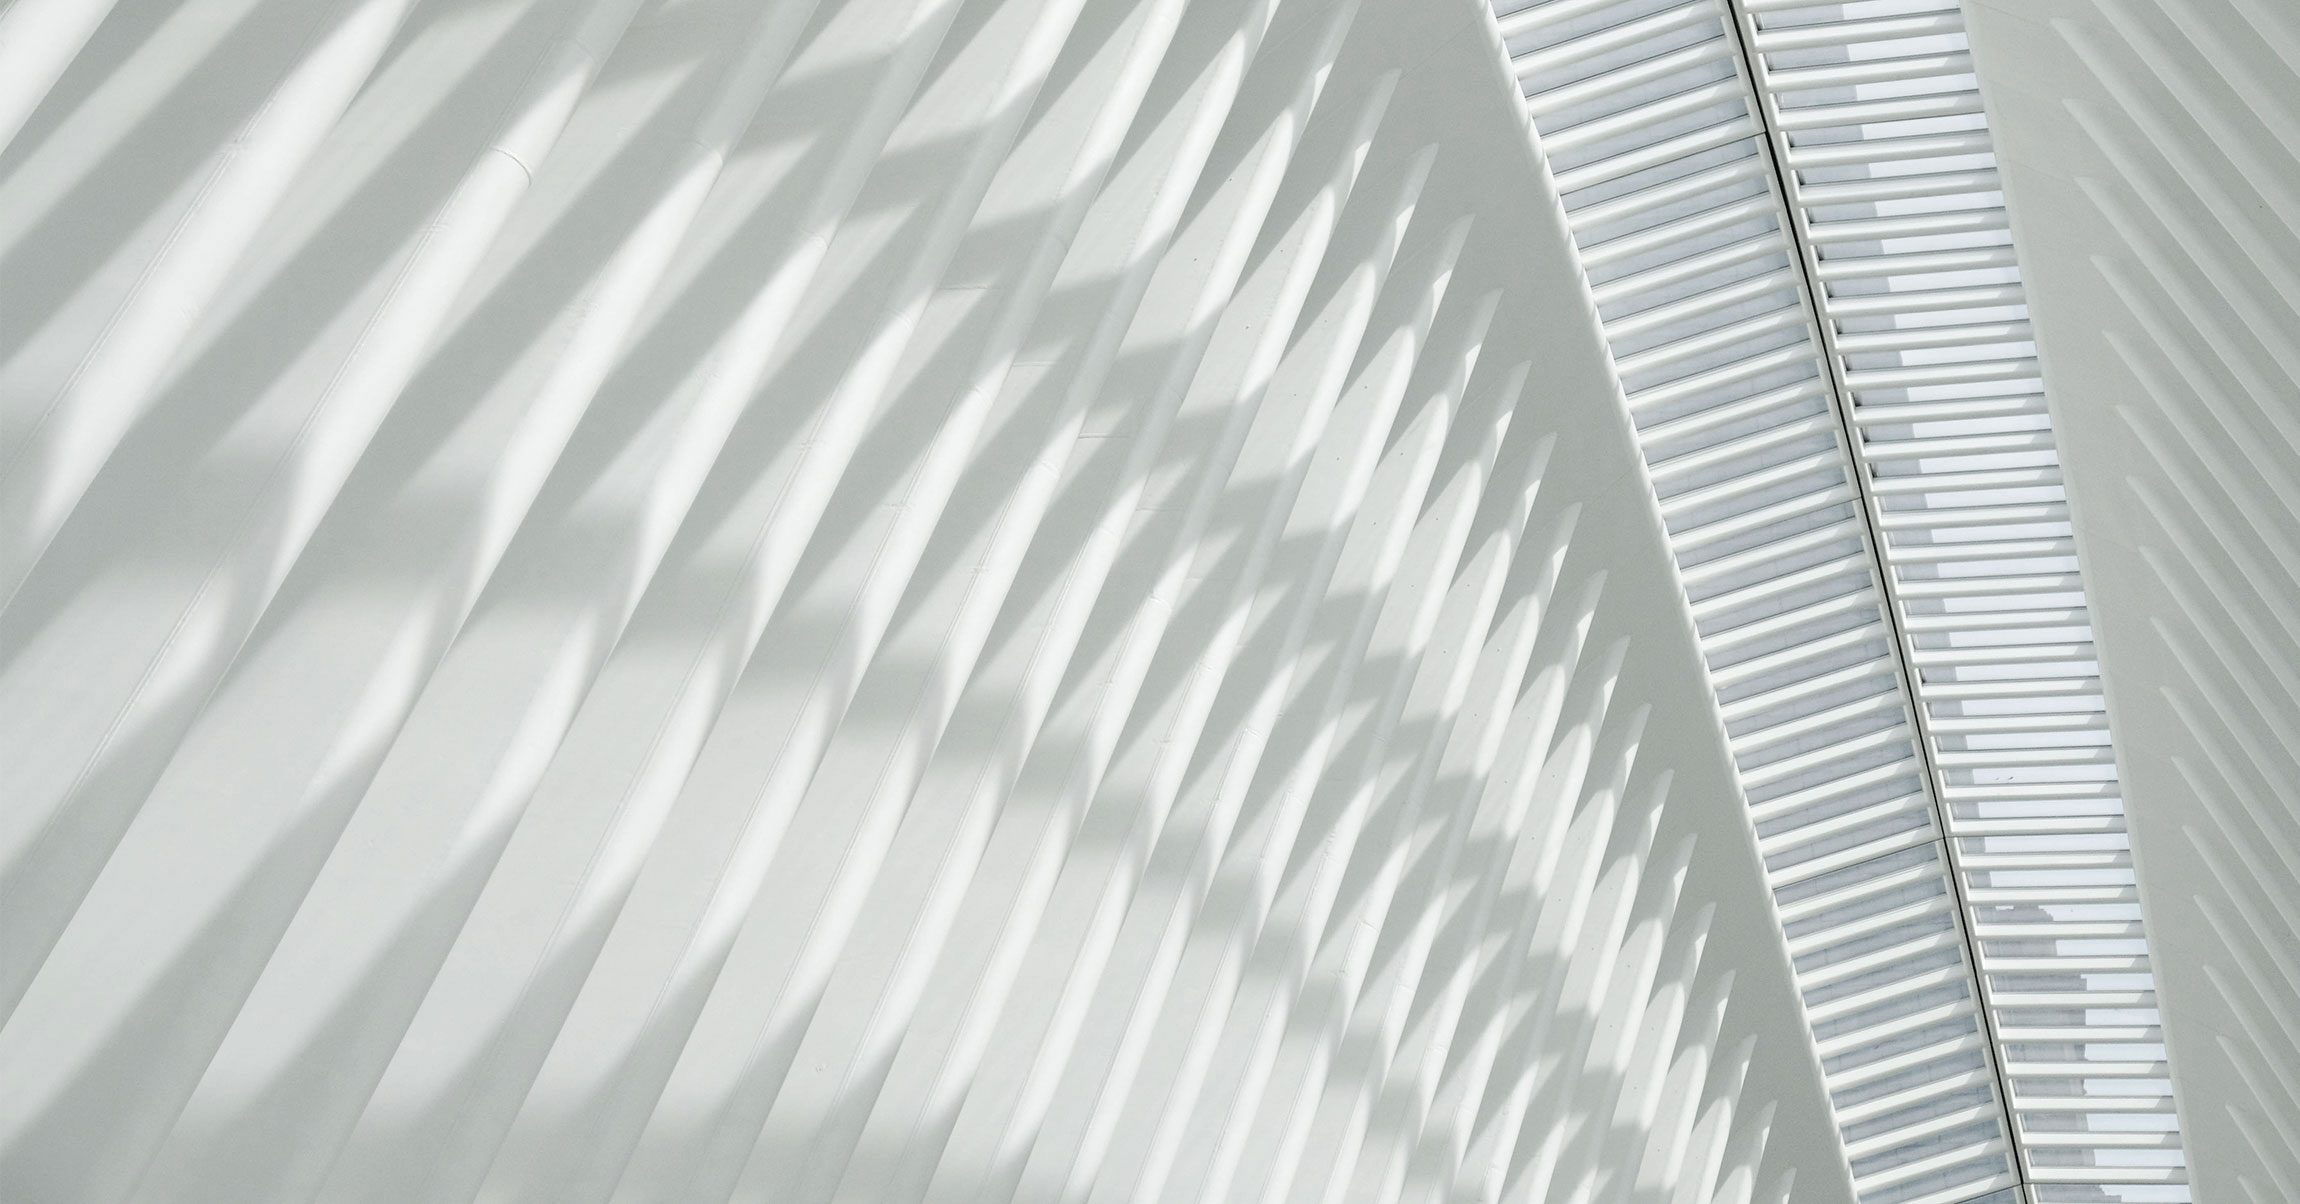 The Oculus ceiling at Westfield World Trade Center